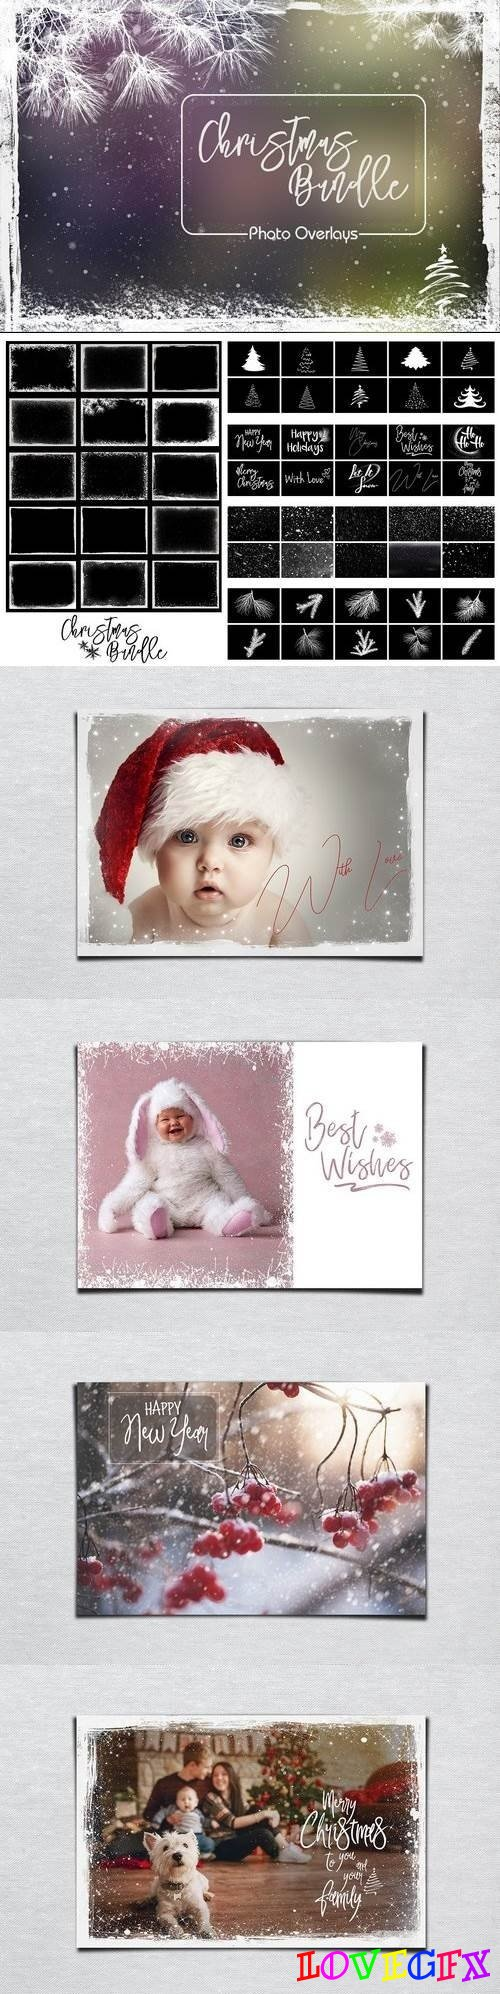 Christmas Bundle Photo Overlays - 2029320